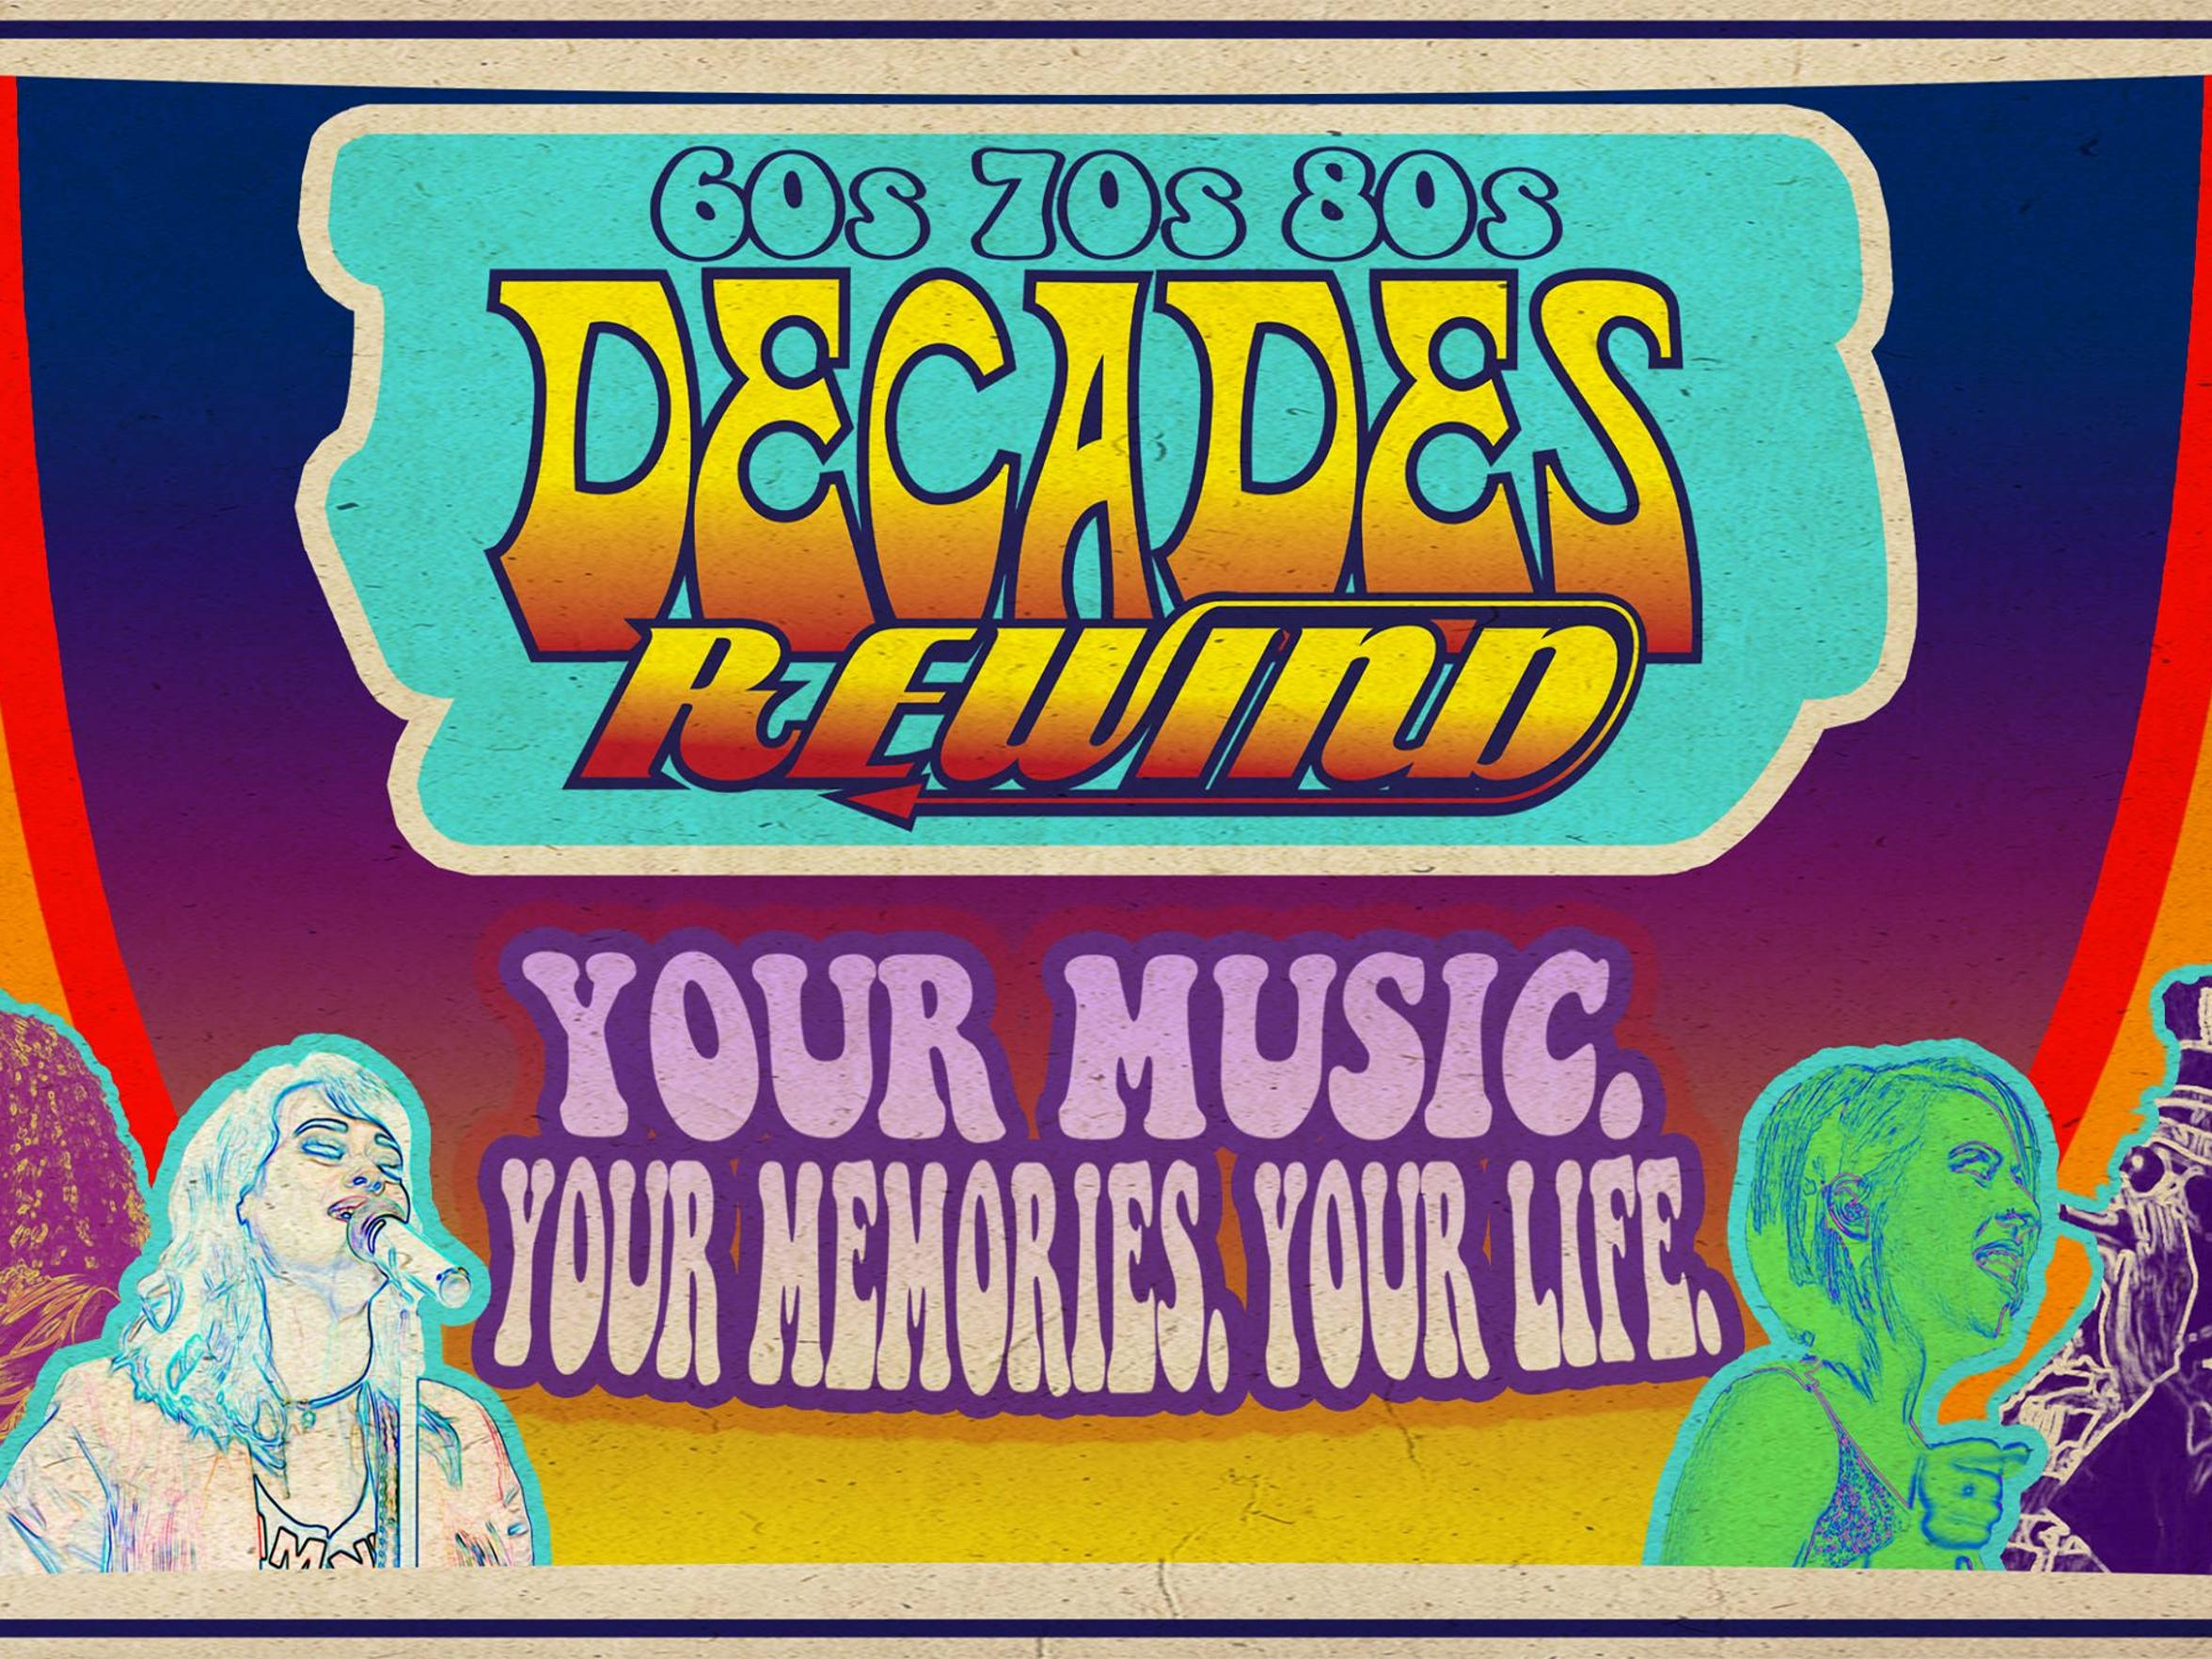 The Decades Rewind will take attendees back to the